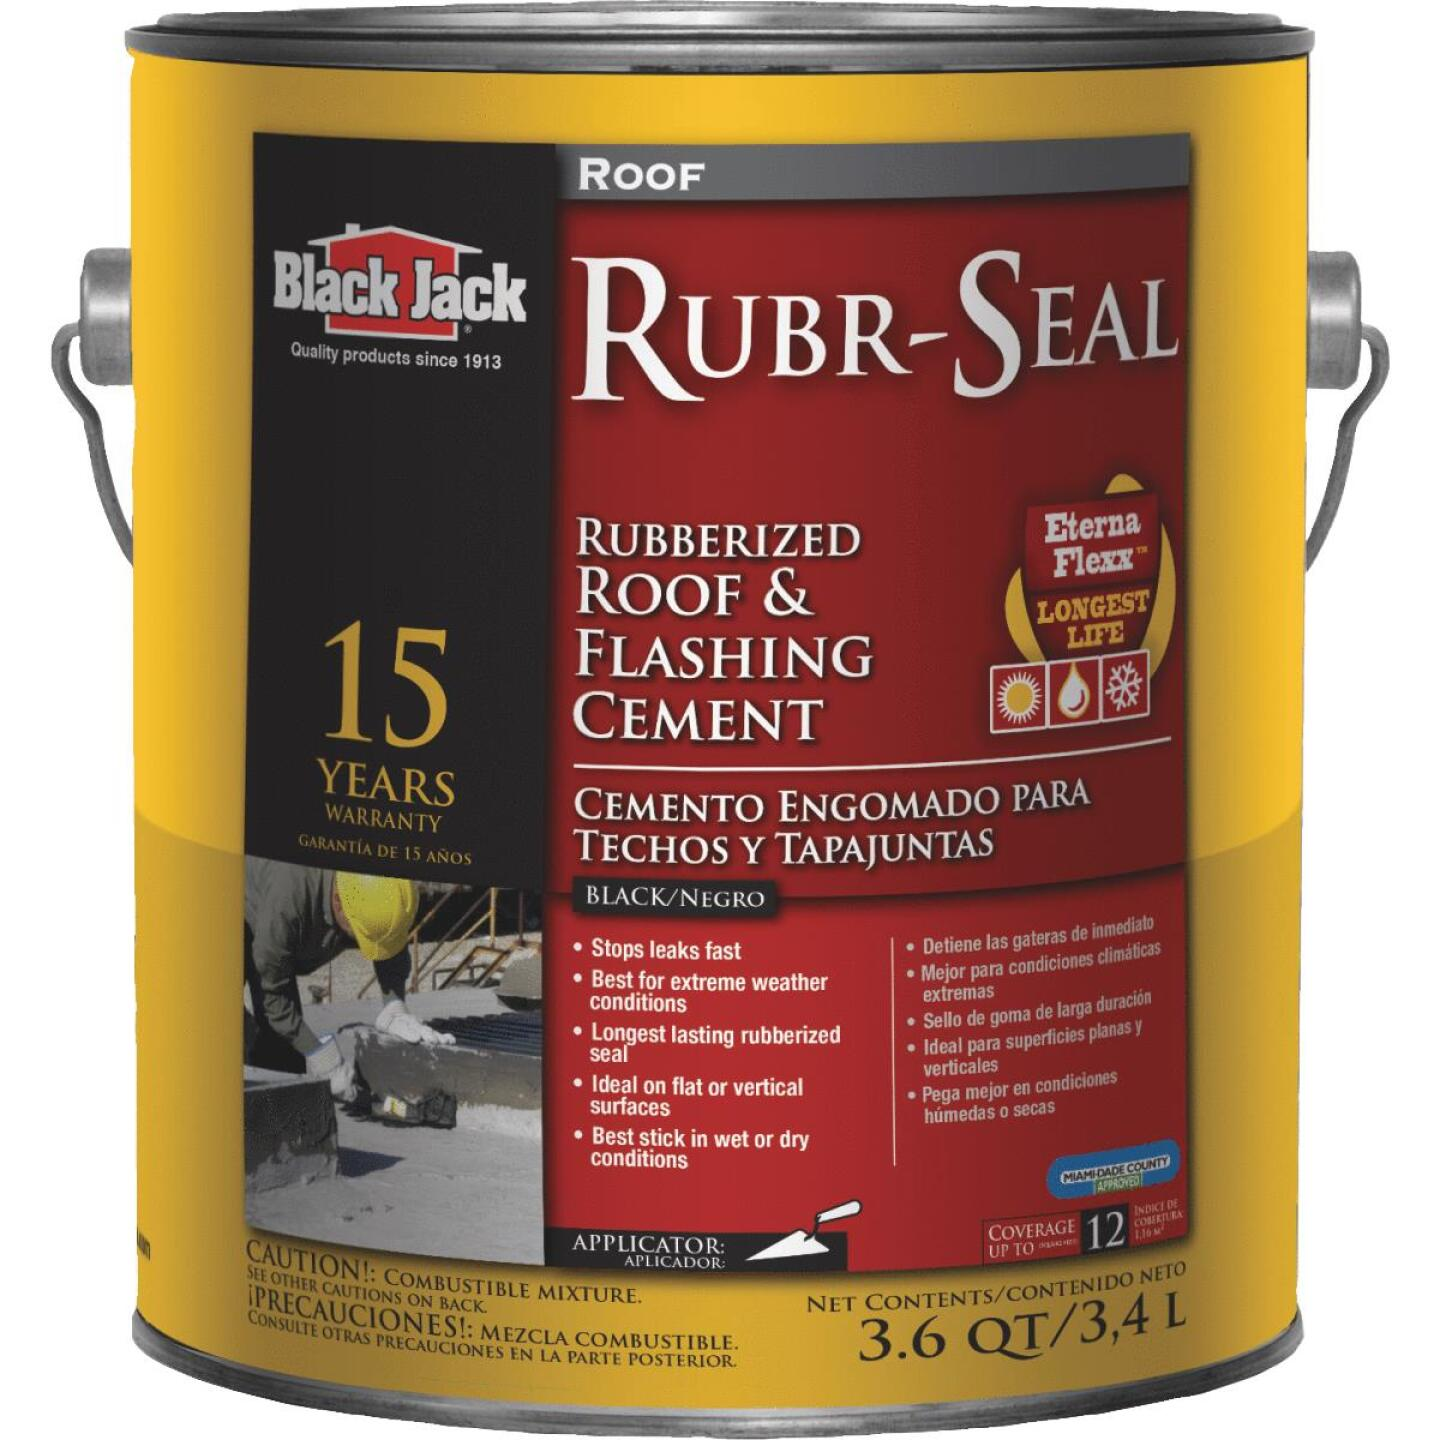 Black Jack Rubr-Seal 1 Gal. 15 Year Roof and Flashing Cement Image 1